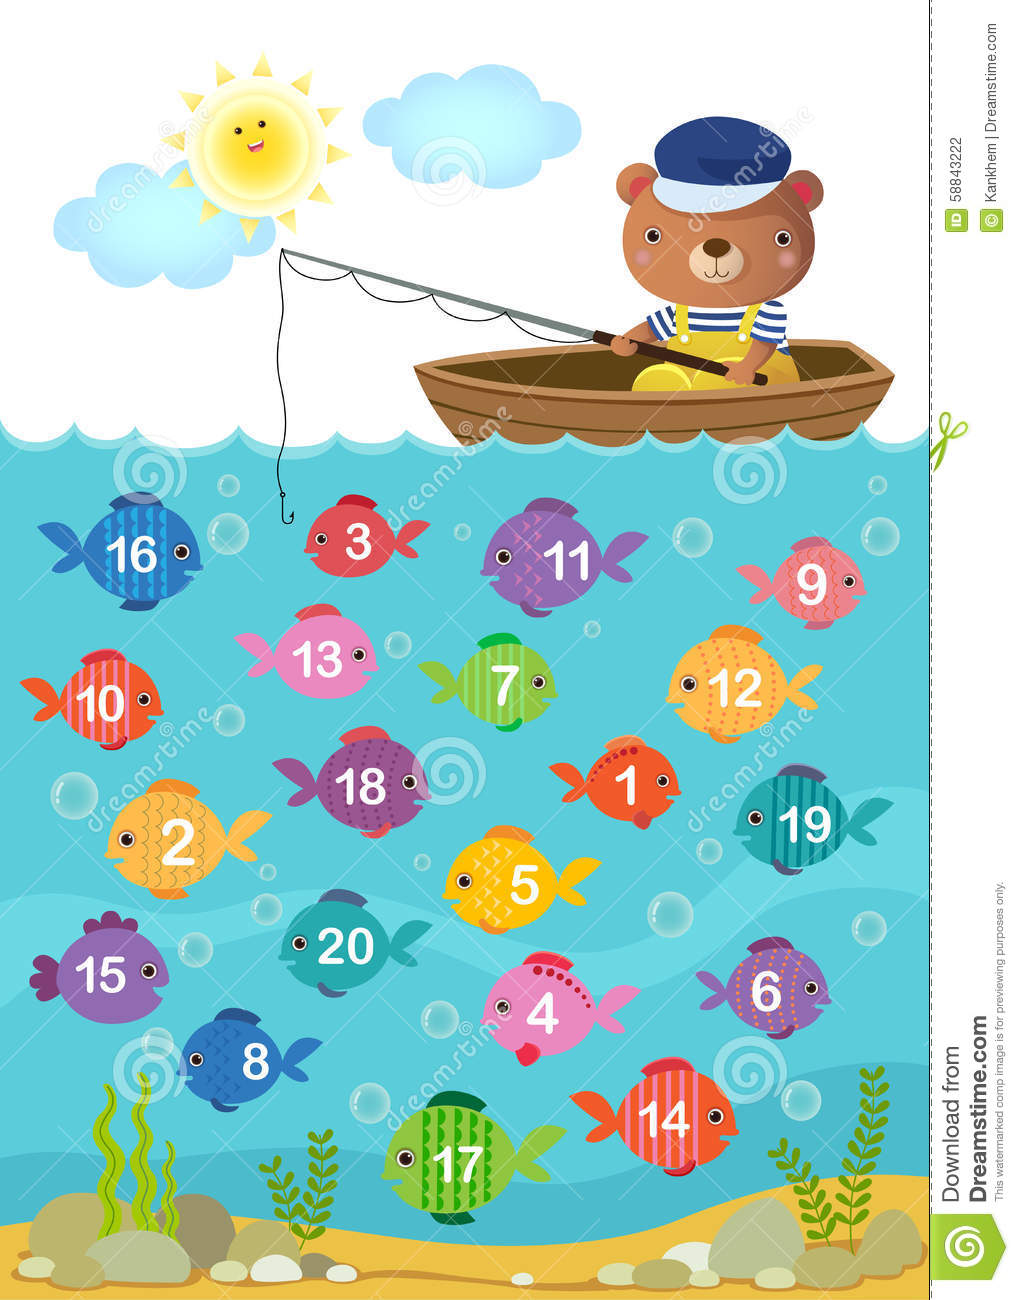 Learn Counting Number With Cute Bear Stock Vector - Illustration of ...